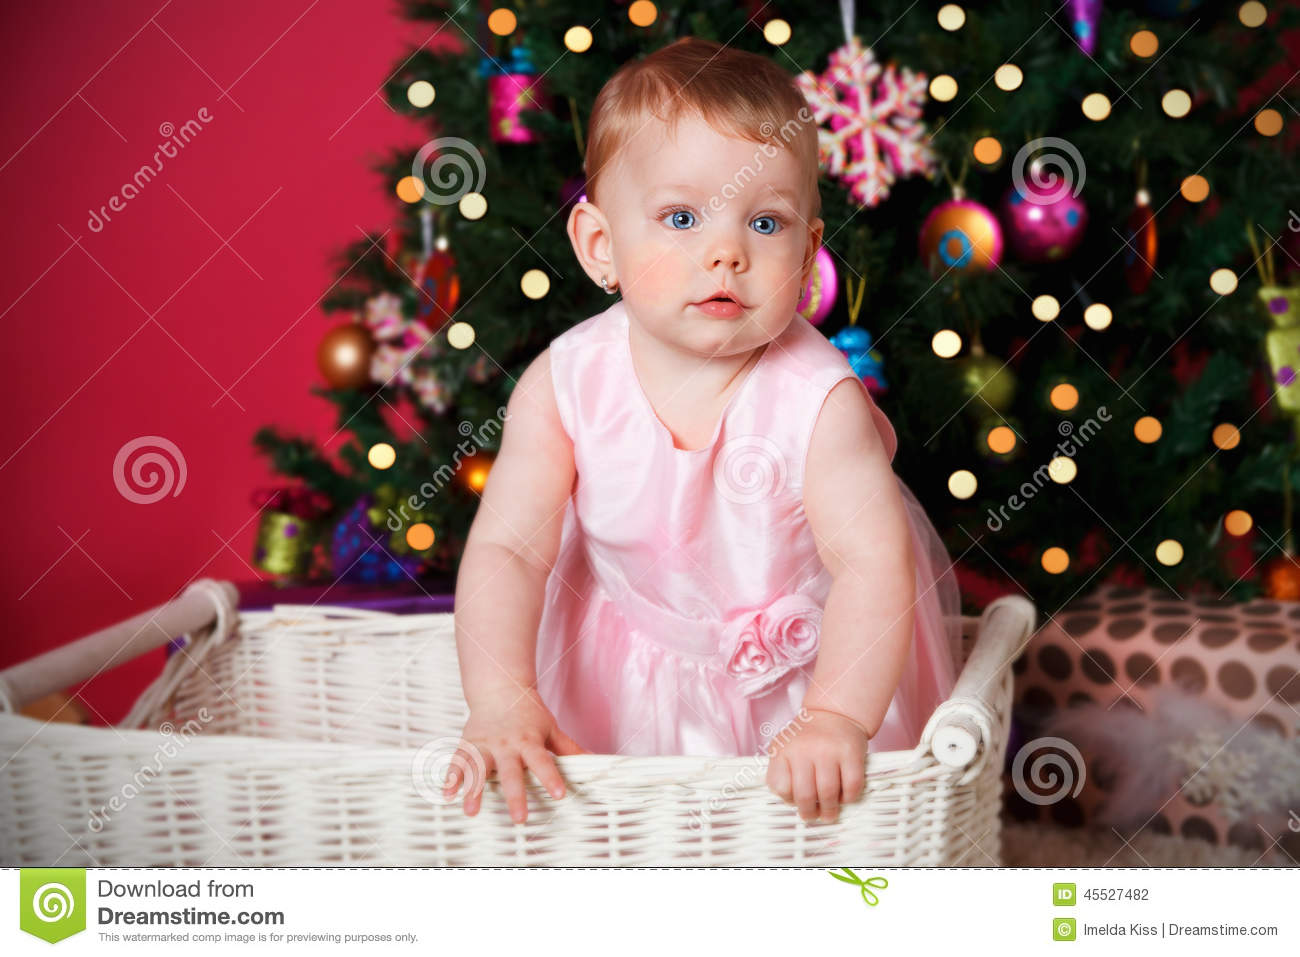 pretty baby girl at christmas stock photo - image of ornament